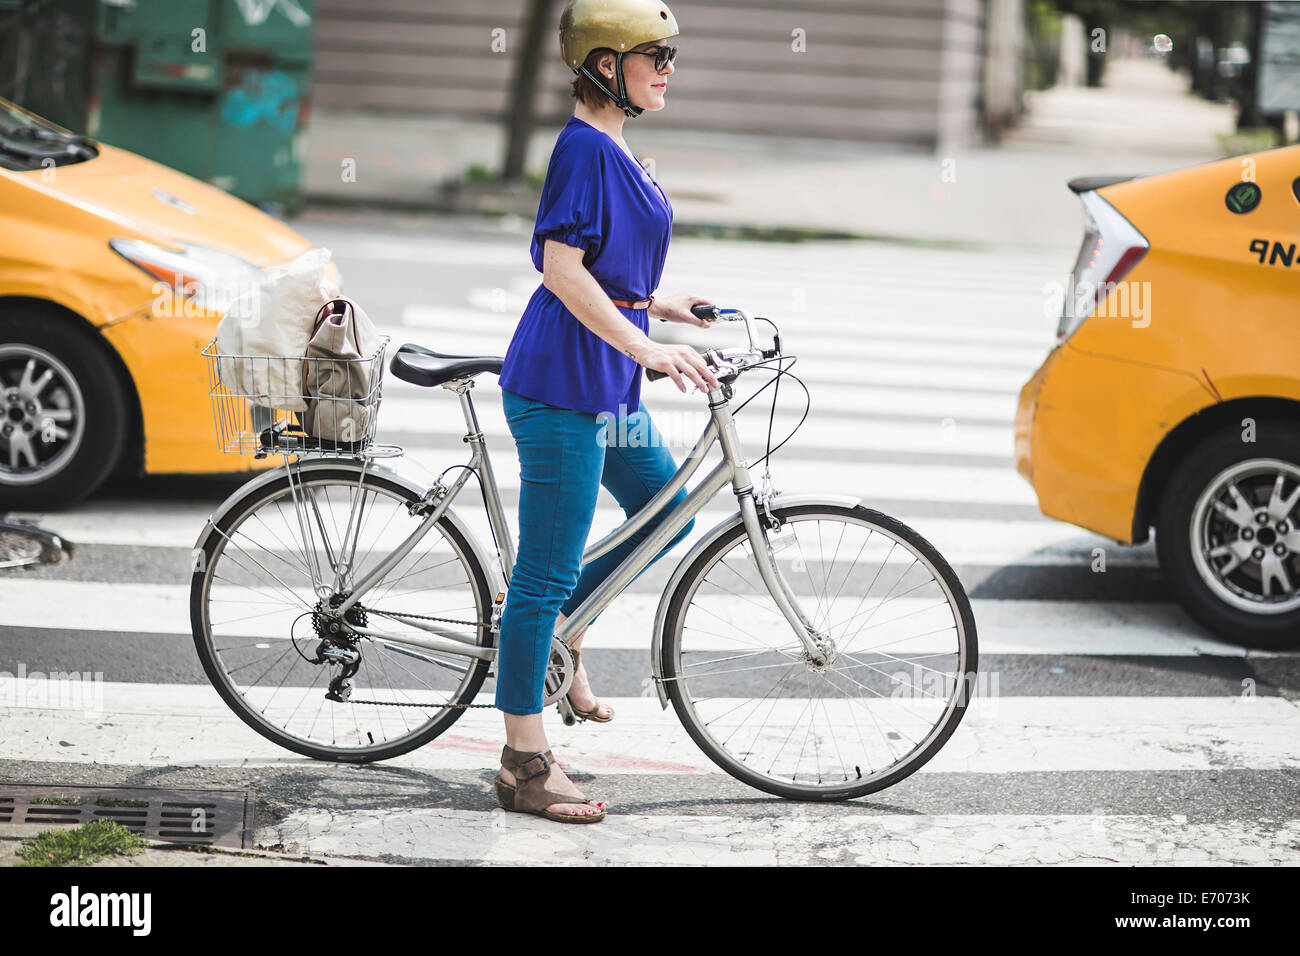 Mid adult woman cyclist waiting on pedestrian crossing, New York City, USA - Stock Image